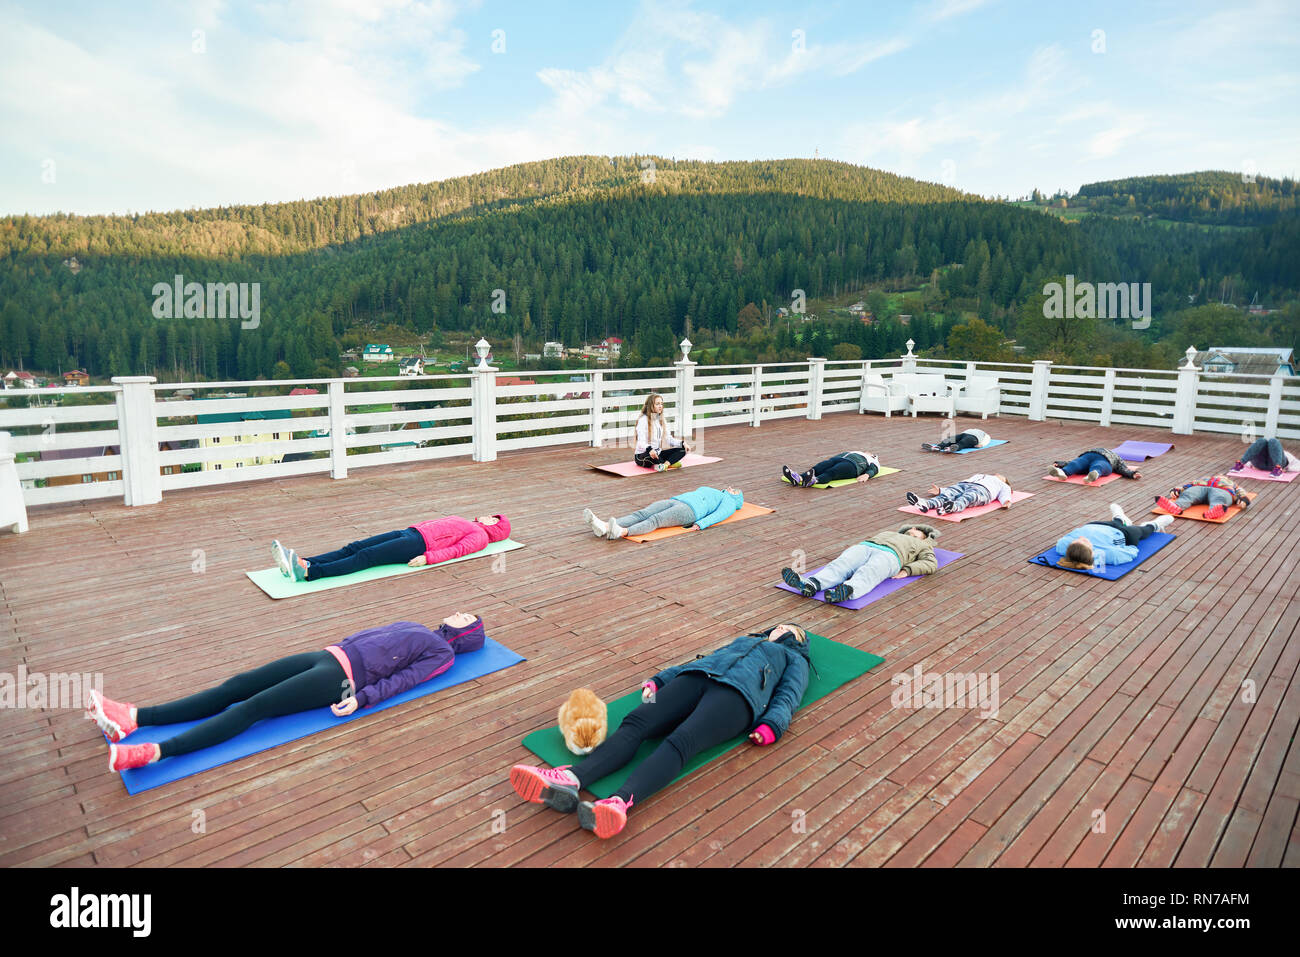 People practicing yoga with yoga teacher in mountains on fresh air. Coach sitting and observing. Group lying on yoga mats, looking up and relaxing outside. - Stock Image